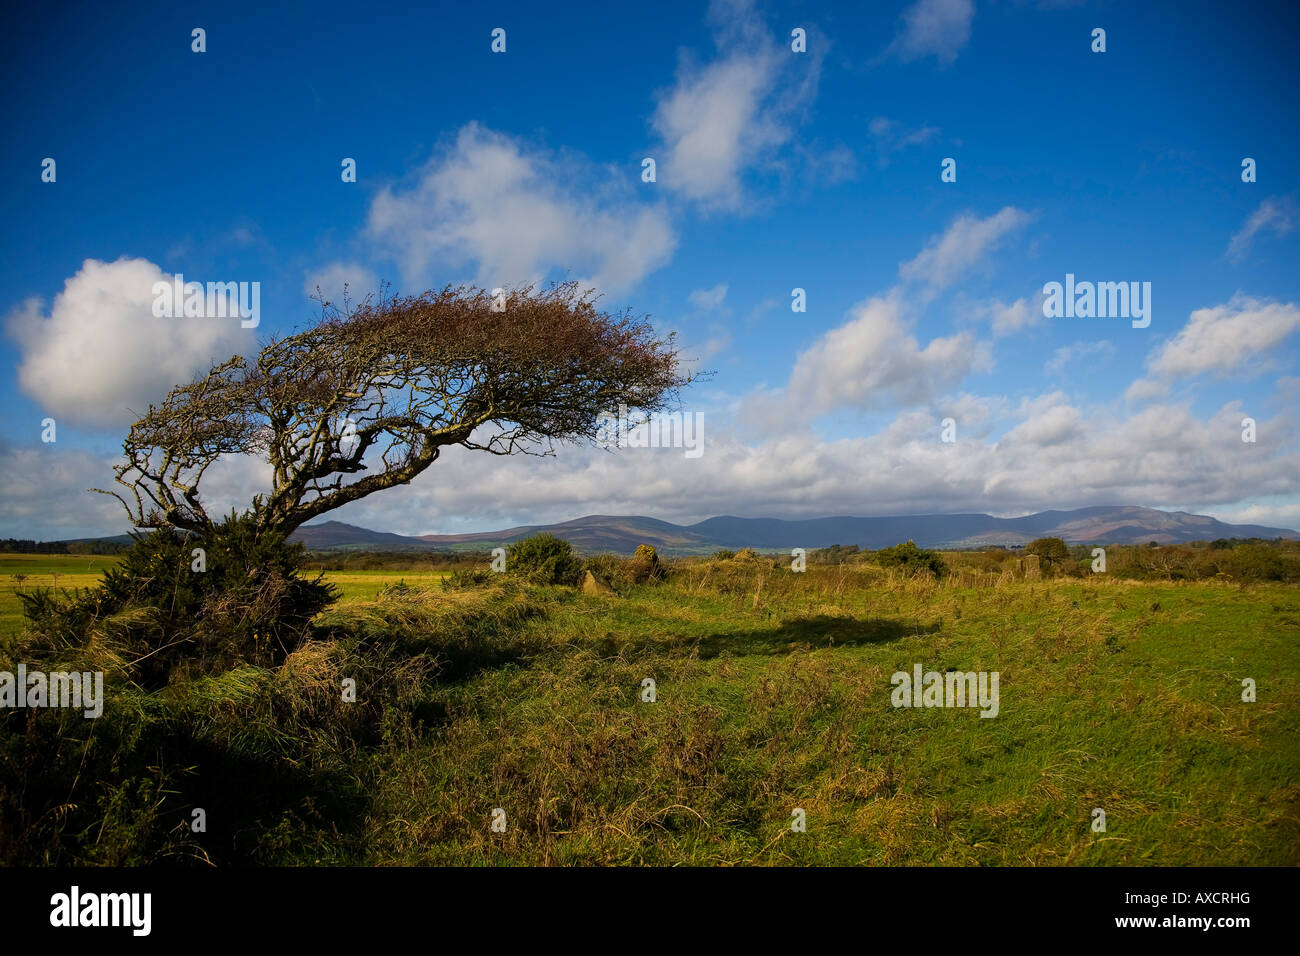 Sculptural windswept Hawthorn tree and distant Comeragh Mountains, County Waterford, Ireland - Stock Image